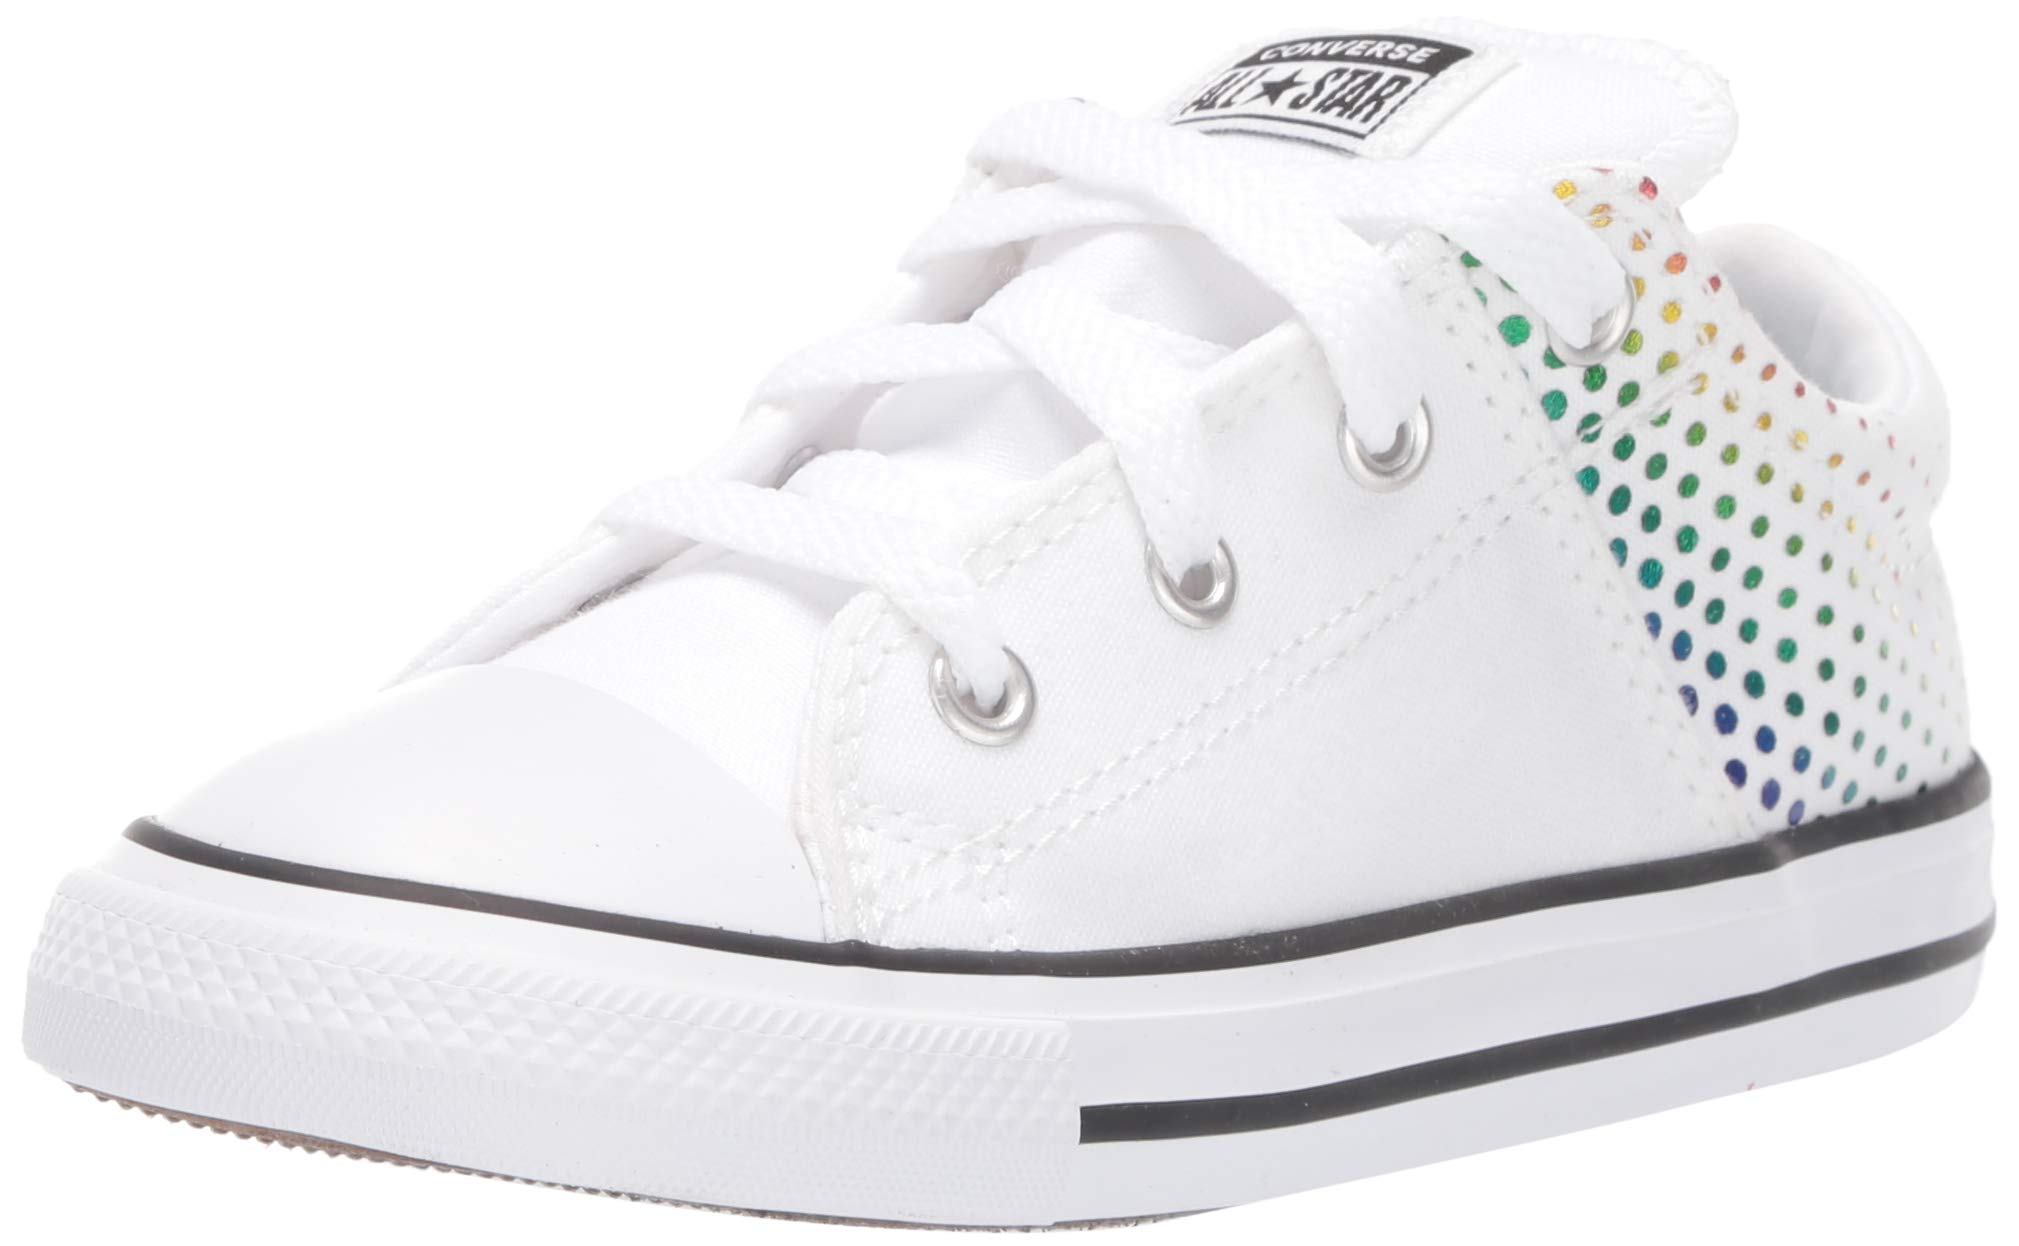 Converse Girls' Chuck Taylor All Star Madison Rainbow Foil Print Low Top Sneaker, White/Multi/White, 7 M US Toddler by Converse